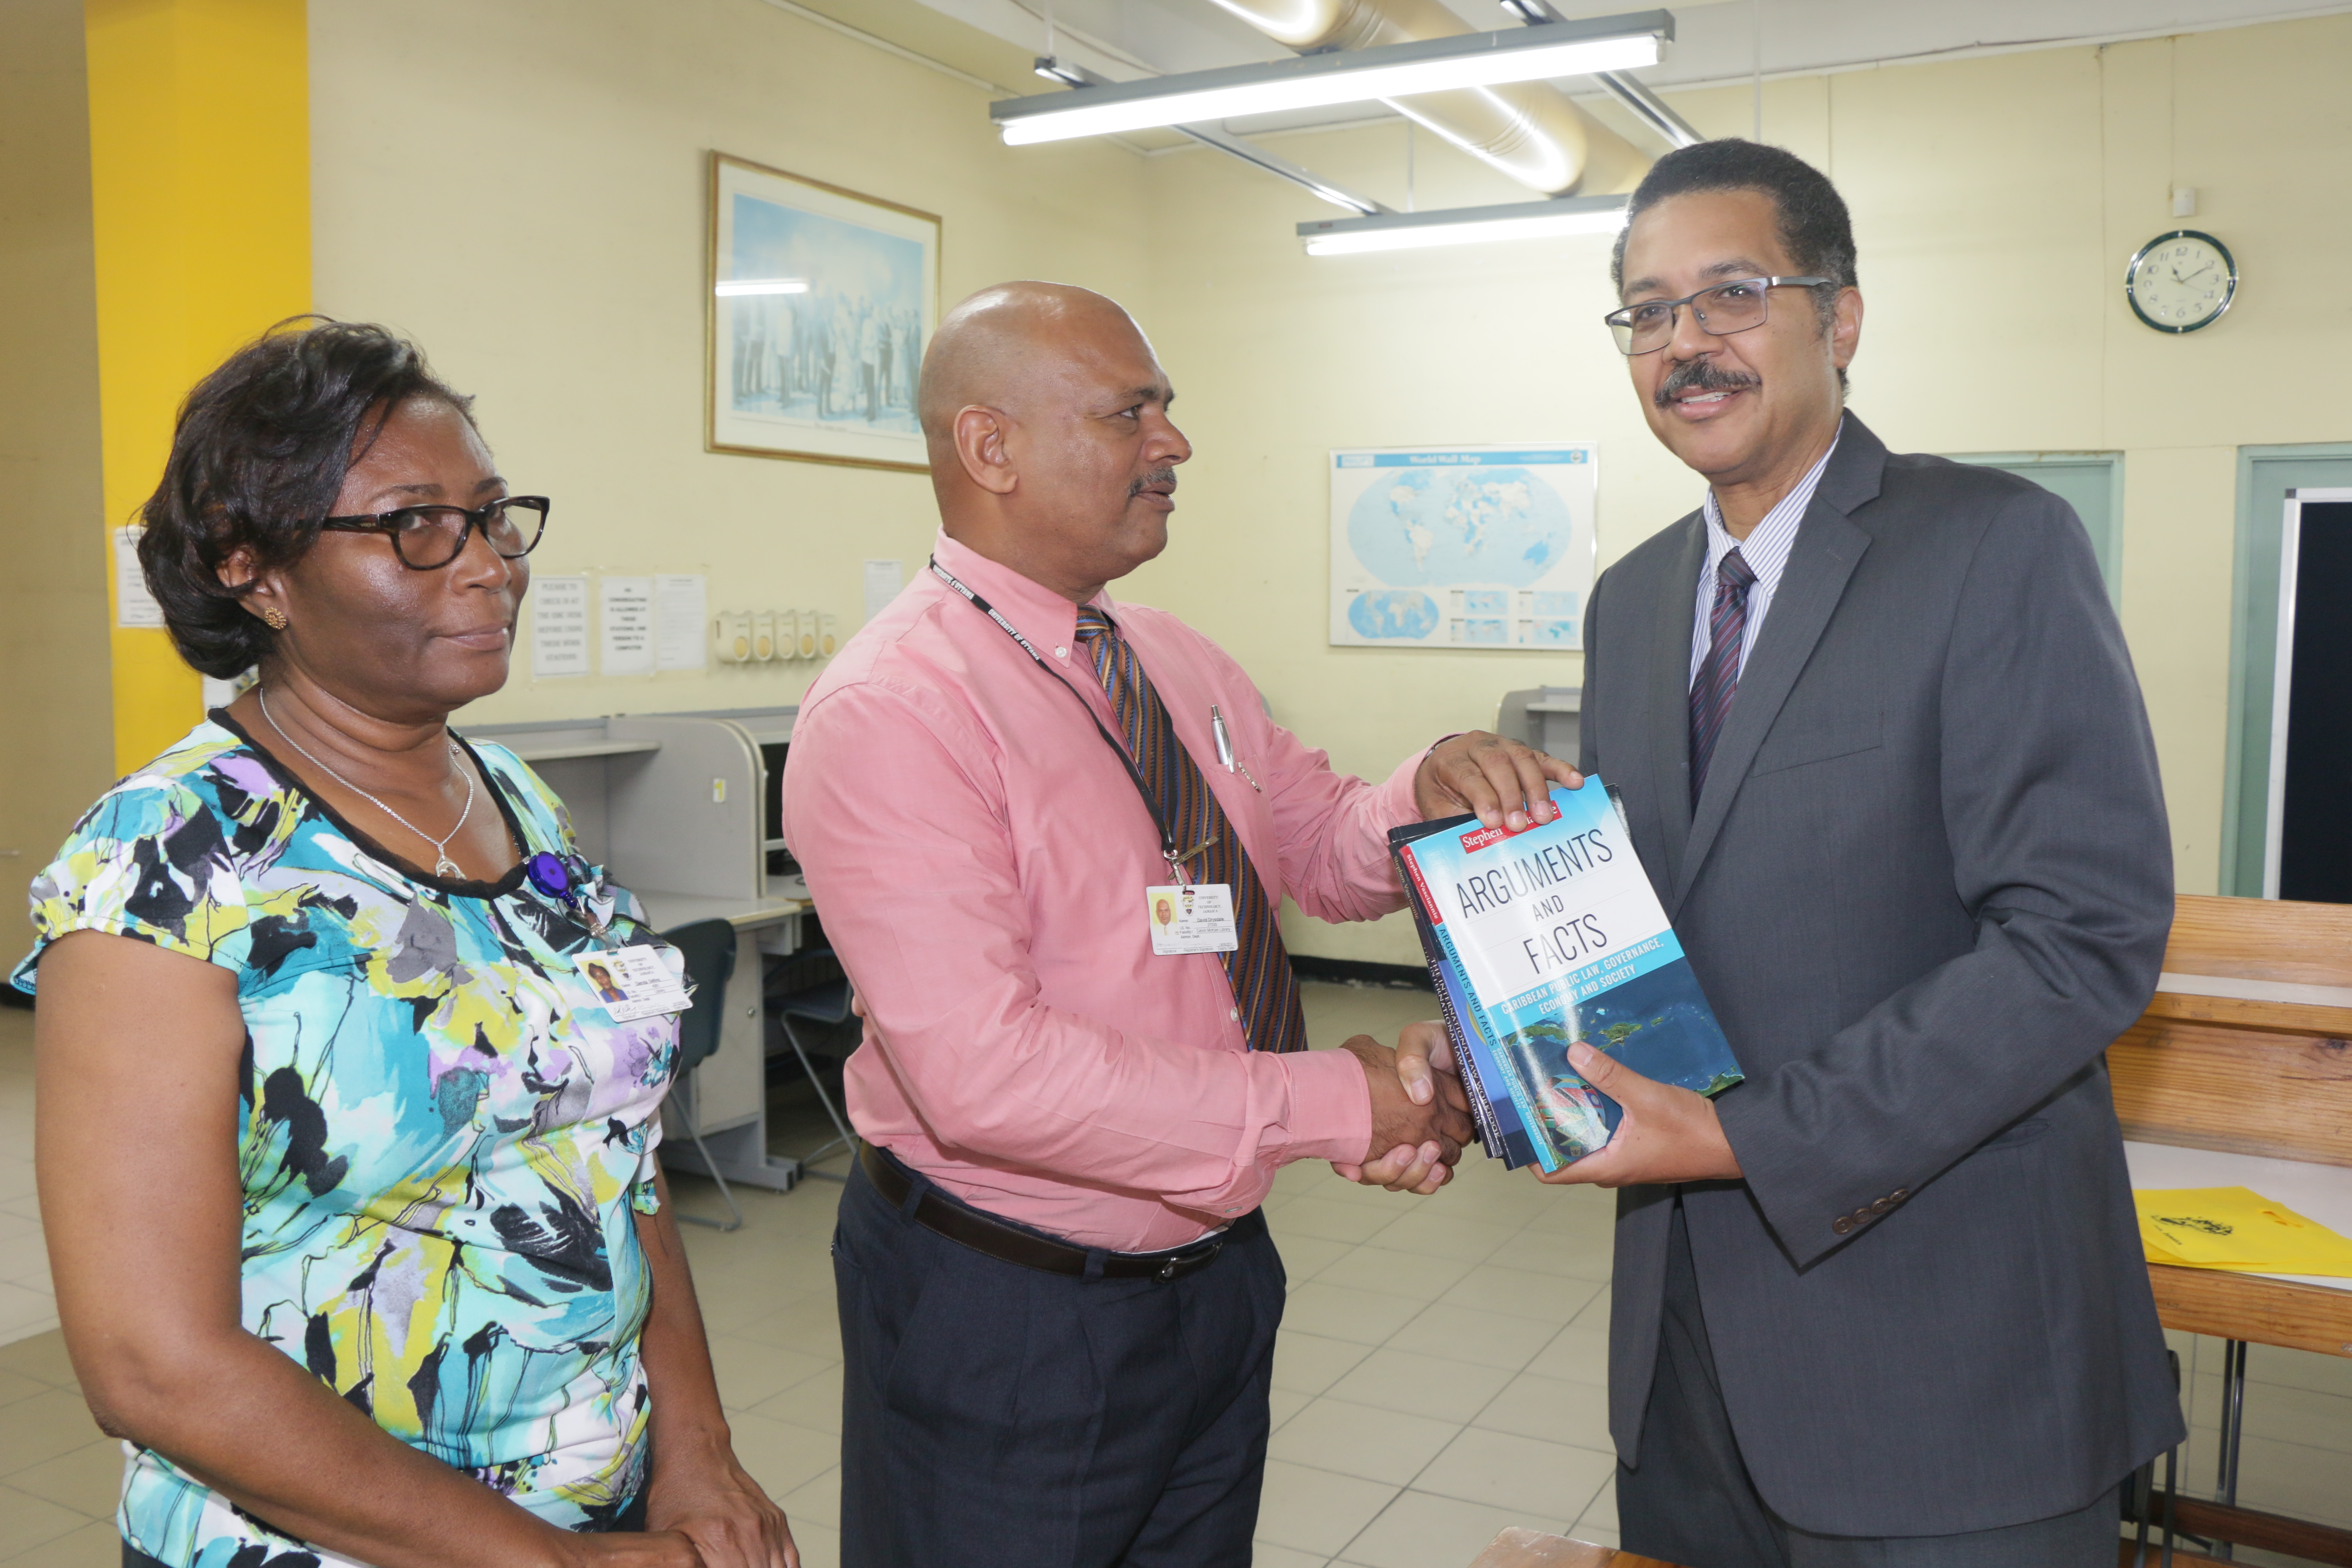 President Vasciannie Presents Collection of his Publications to Calvin McKain Library